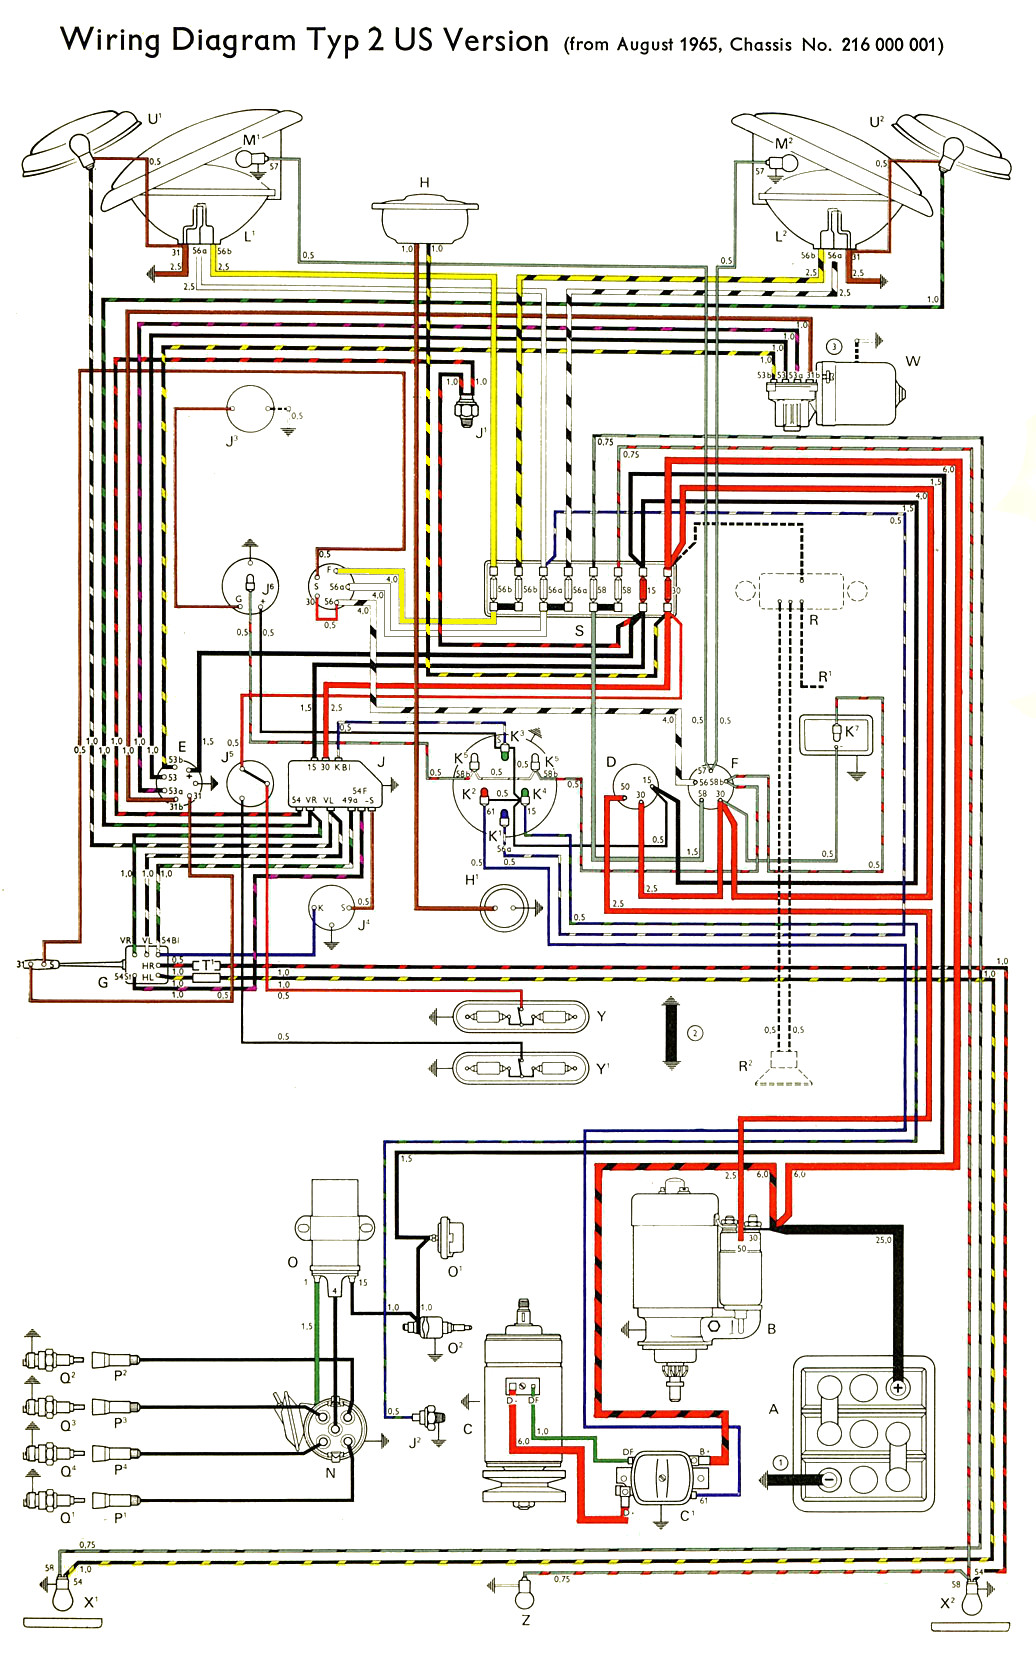 [wrg-5951] 1976 cutlass wiring diagram 1972 oldsmobile cutlass wiring diagram